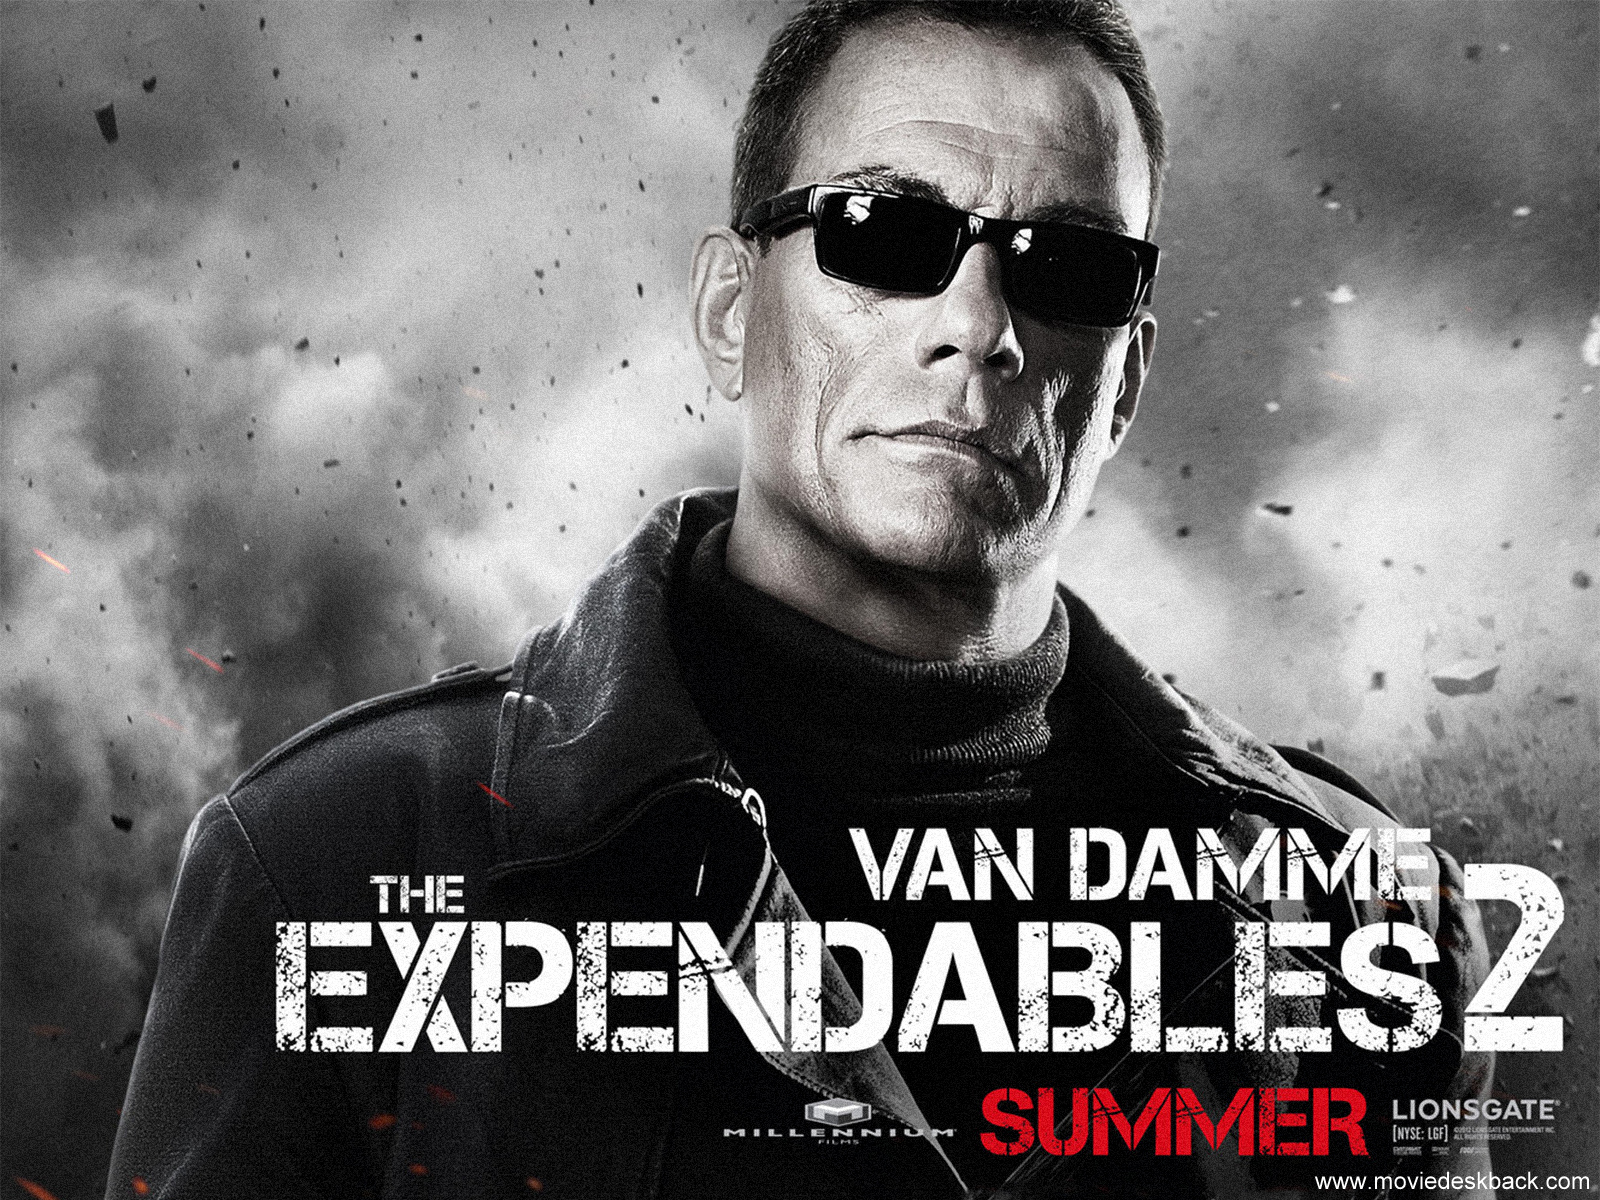 the expendables 2 hits cinemas on aug 16 - dugompinoy | a philippine